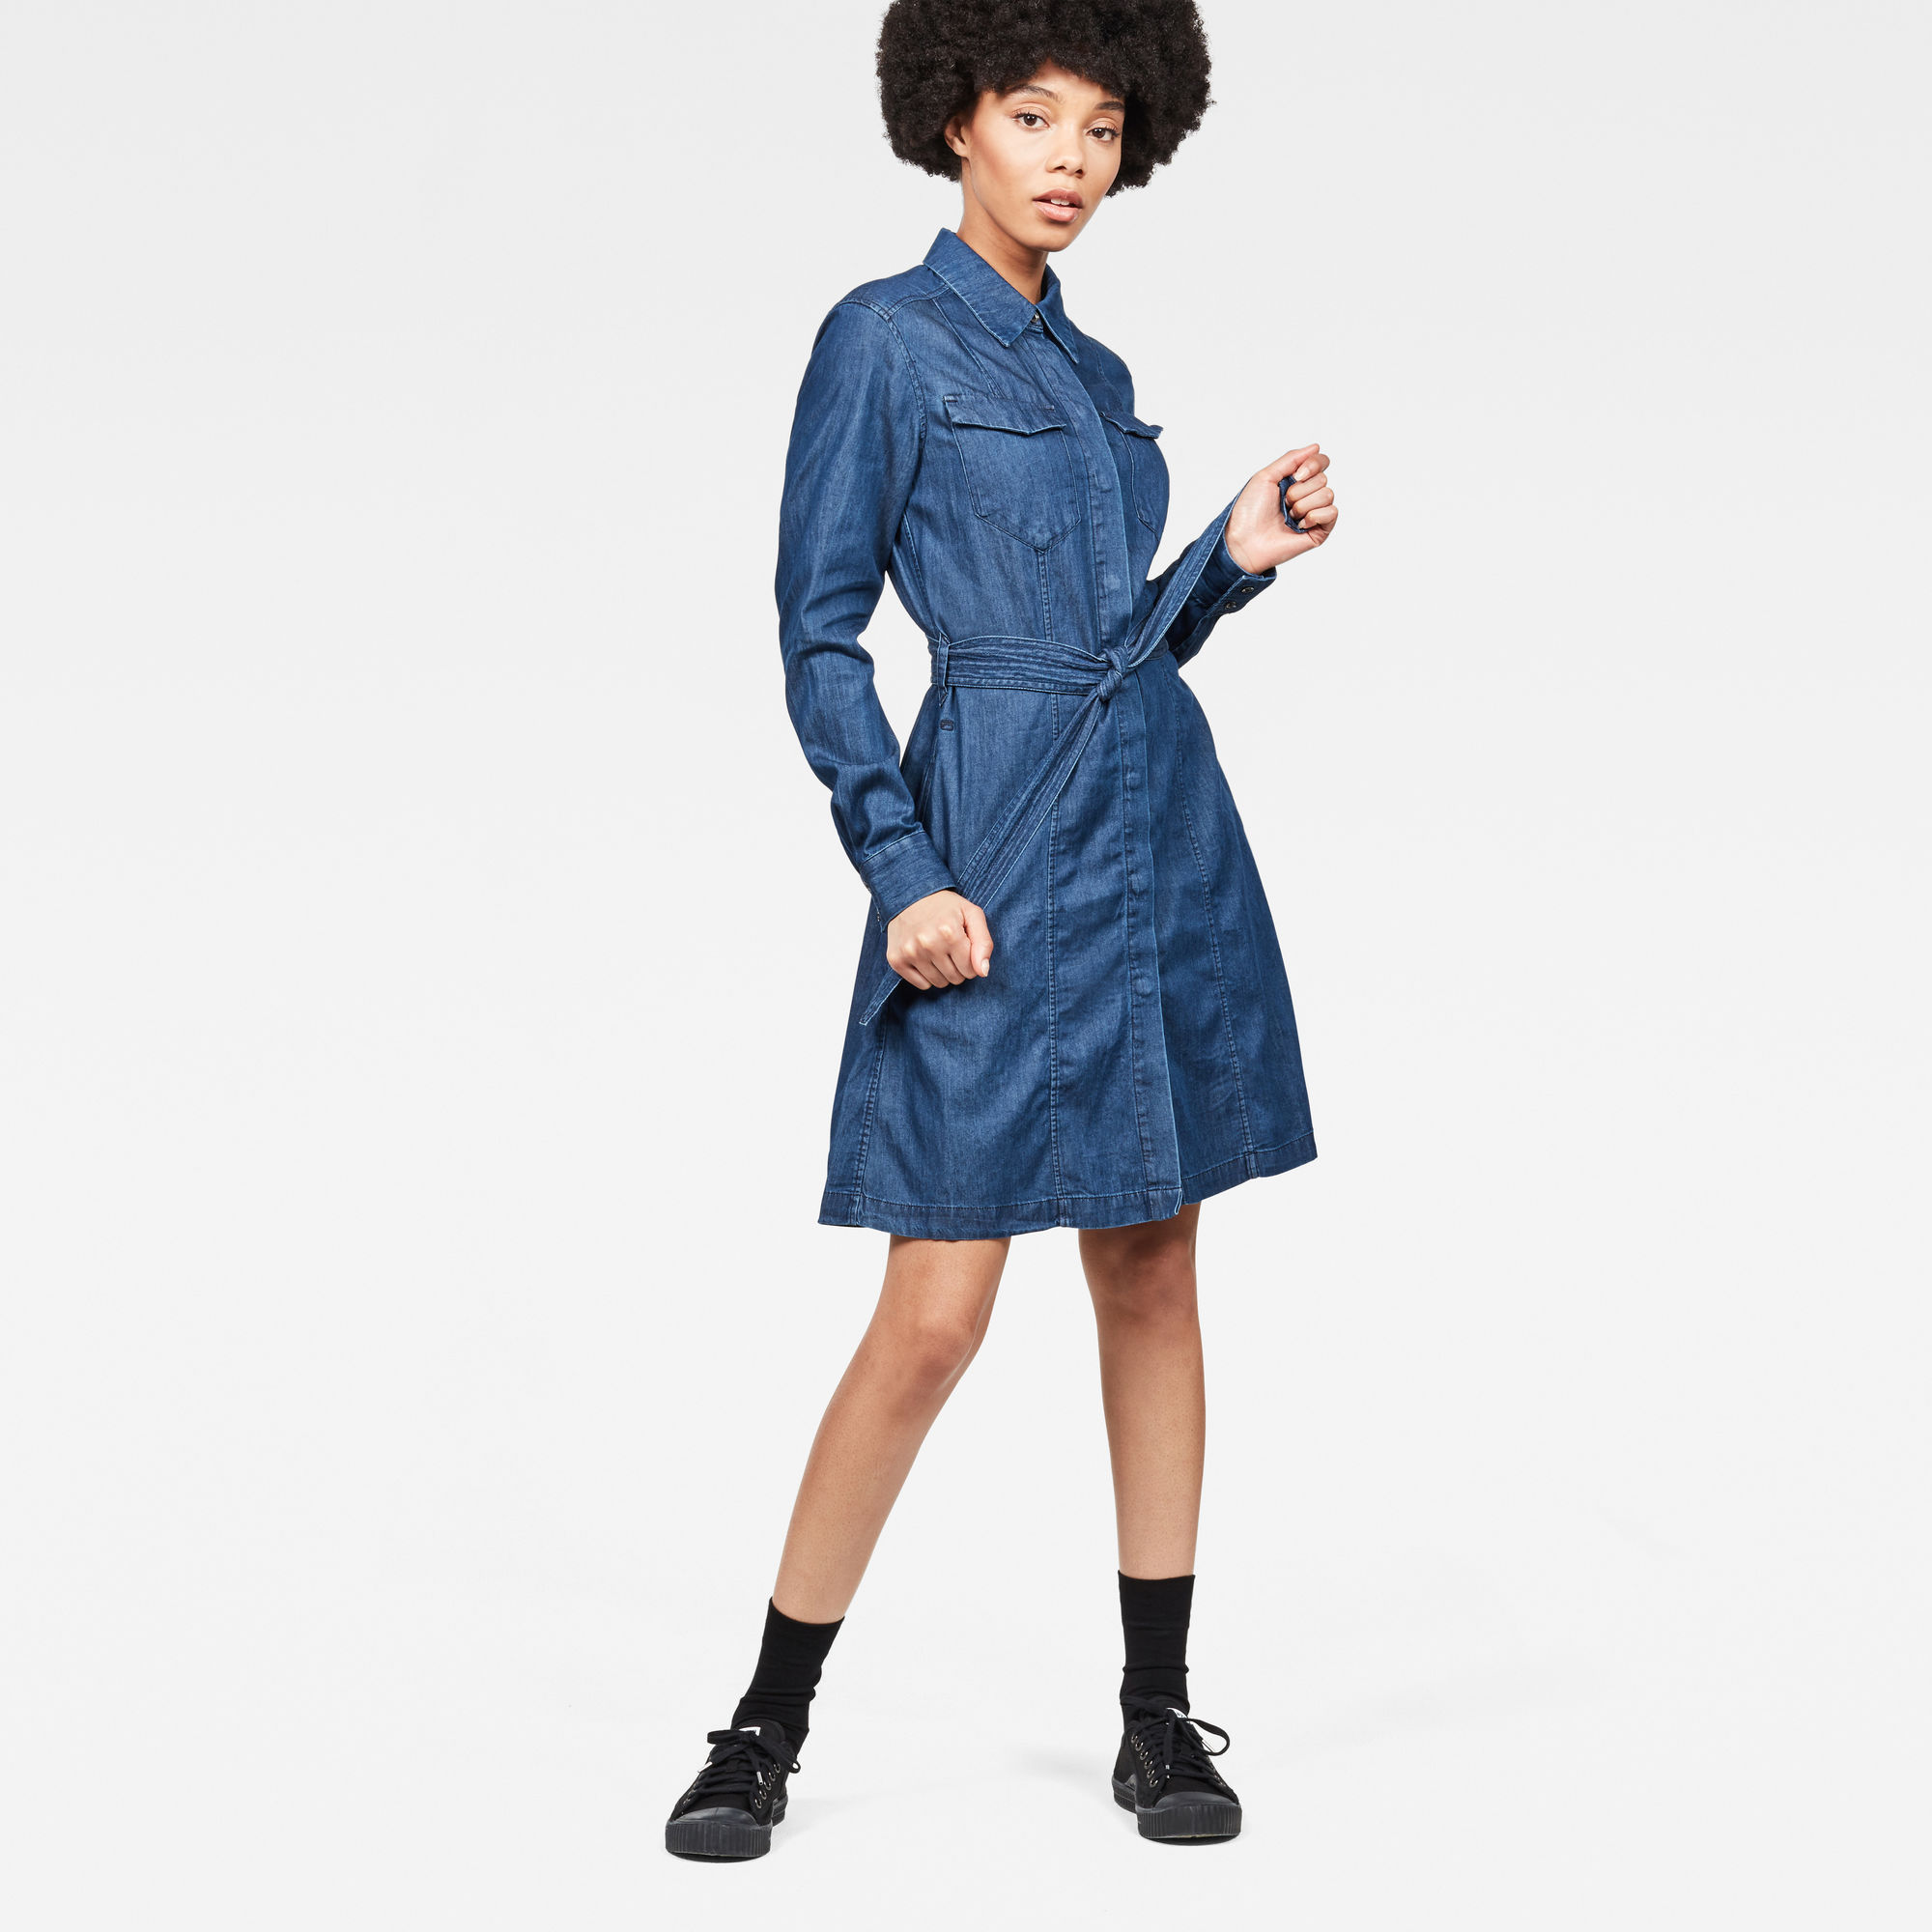 Image of G Star Raw Tacoma Dress